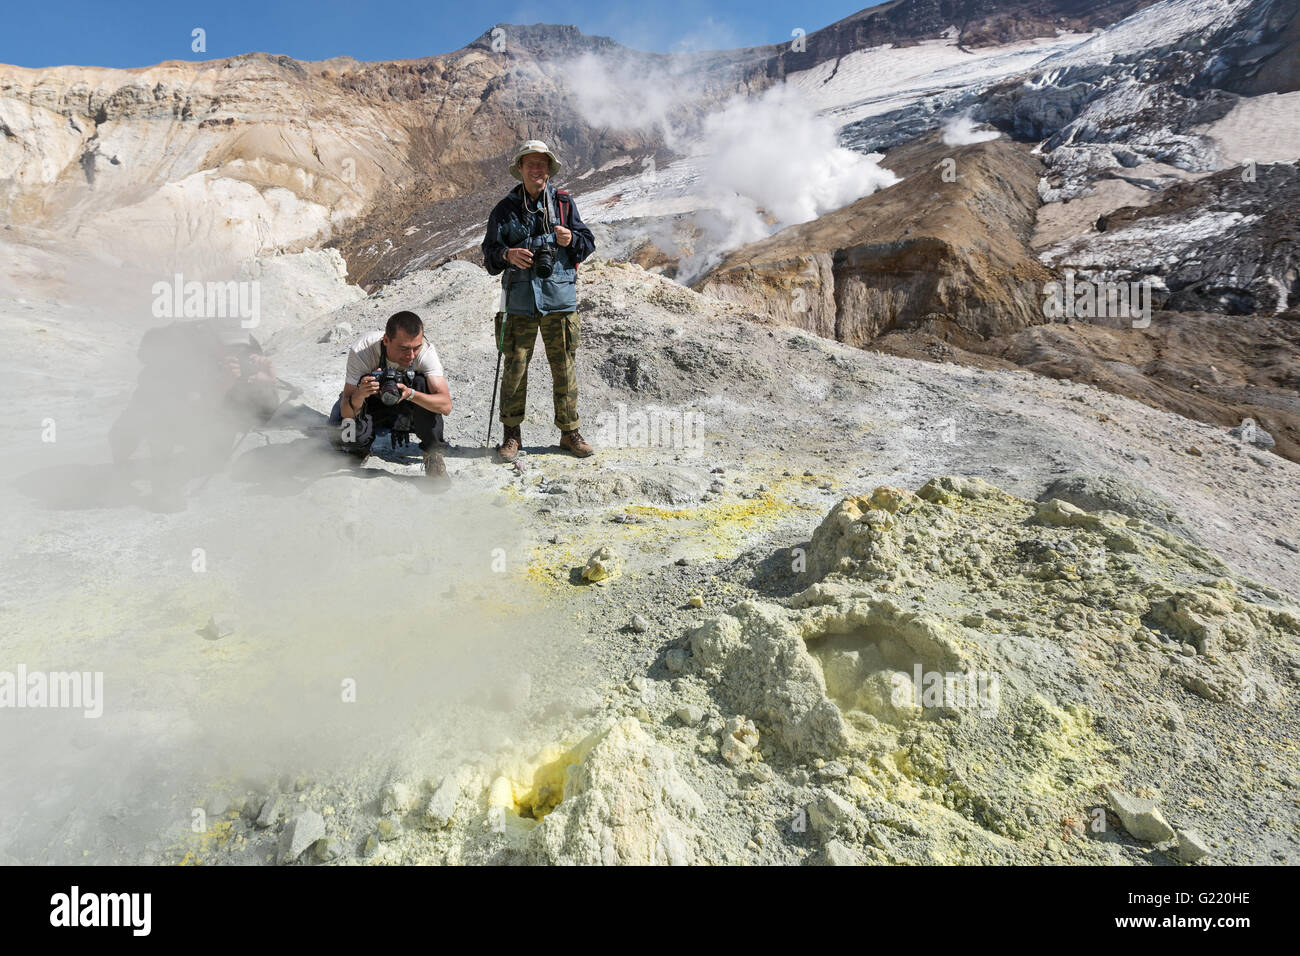 Photographers in crater Mutnovsky Volcano near active sulfur fumaroles, ejecting steam and gas. Kamchatka Peninsula. - Stock Image